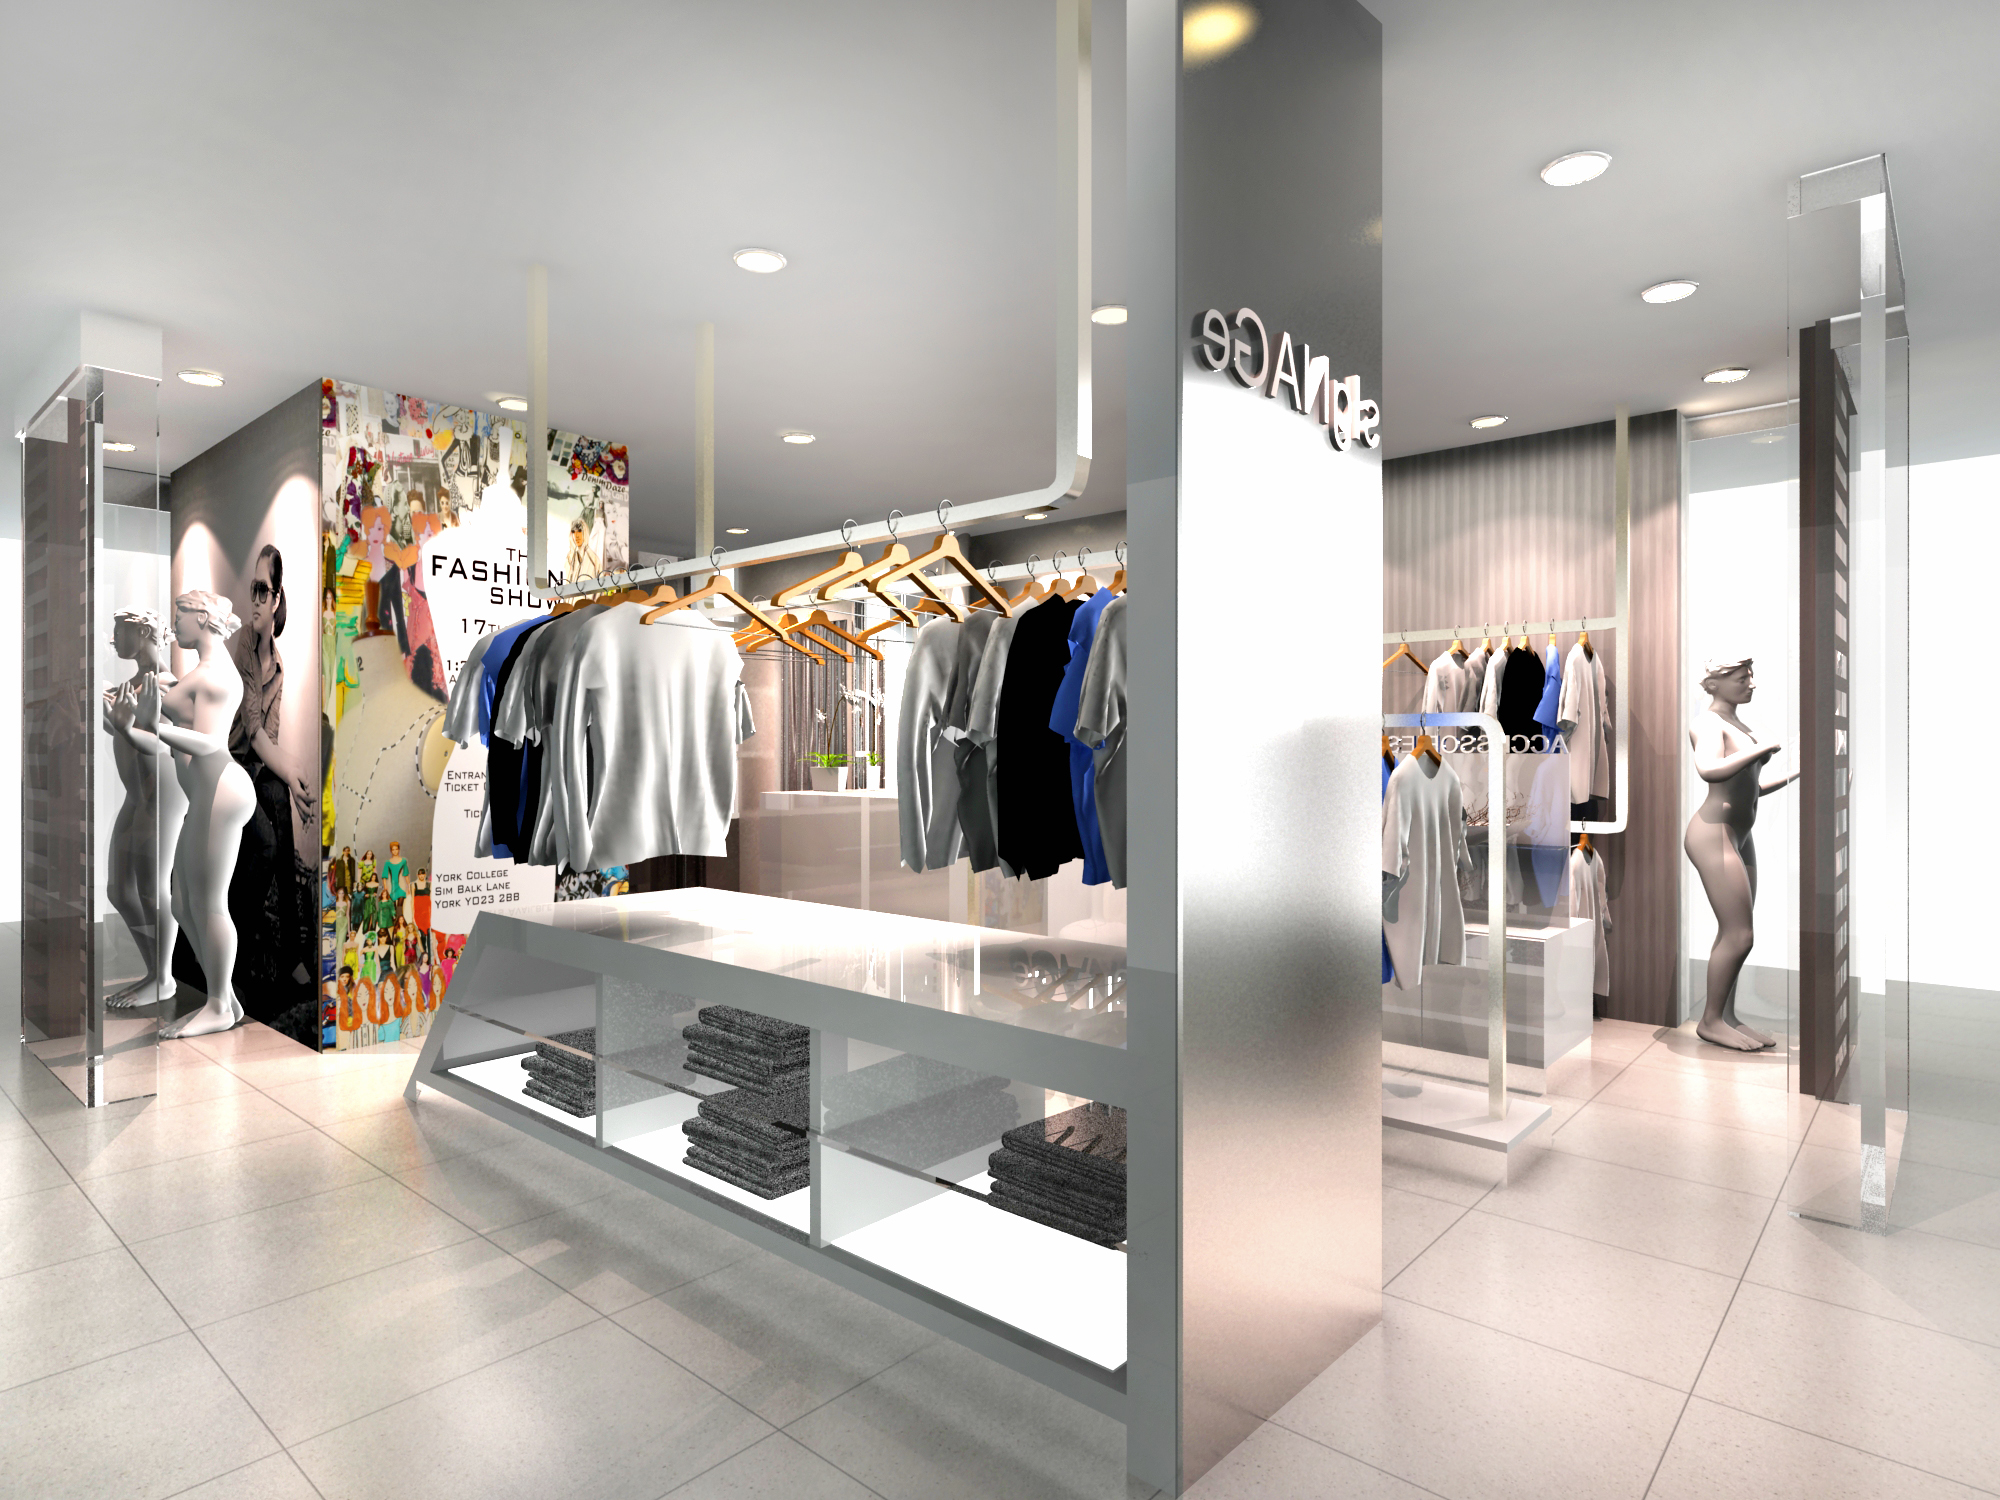 Retail shop design retail store design for Retail shop display ideas